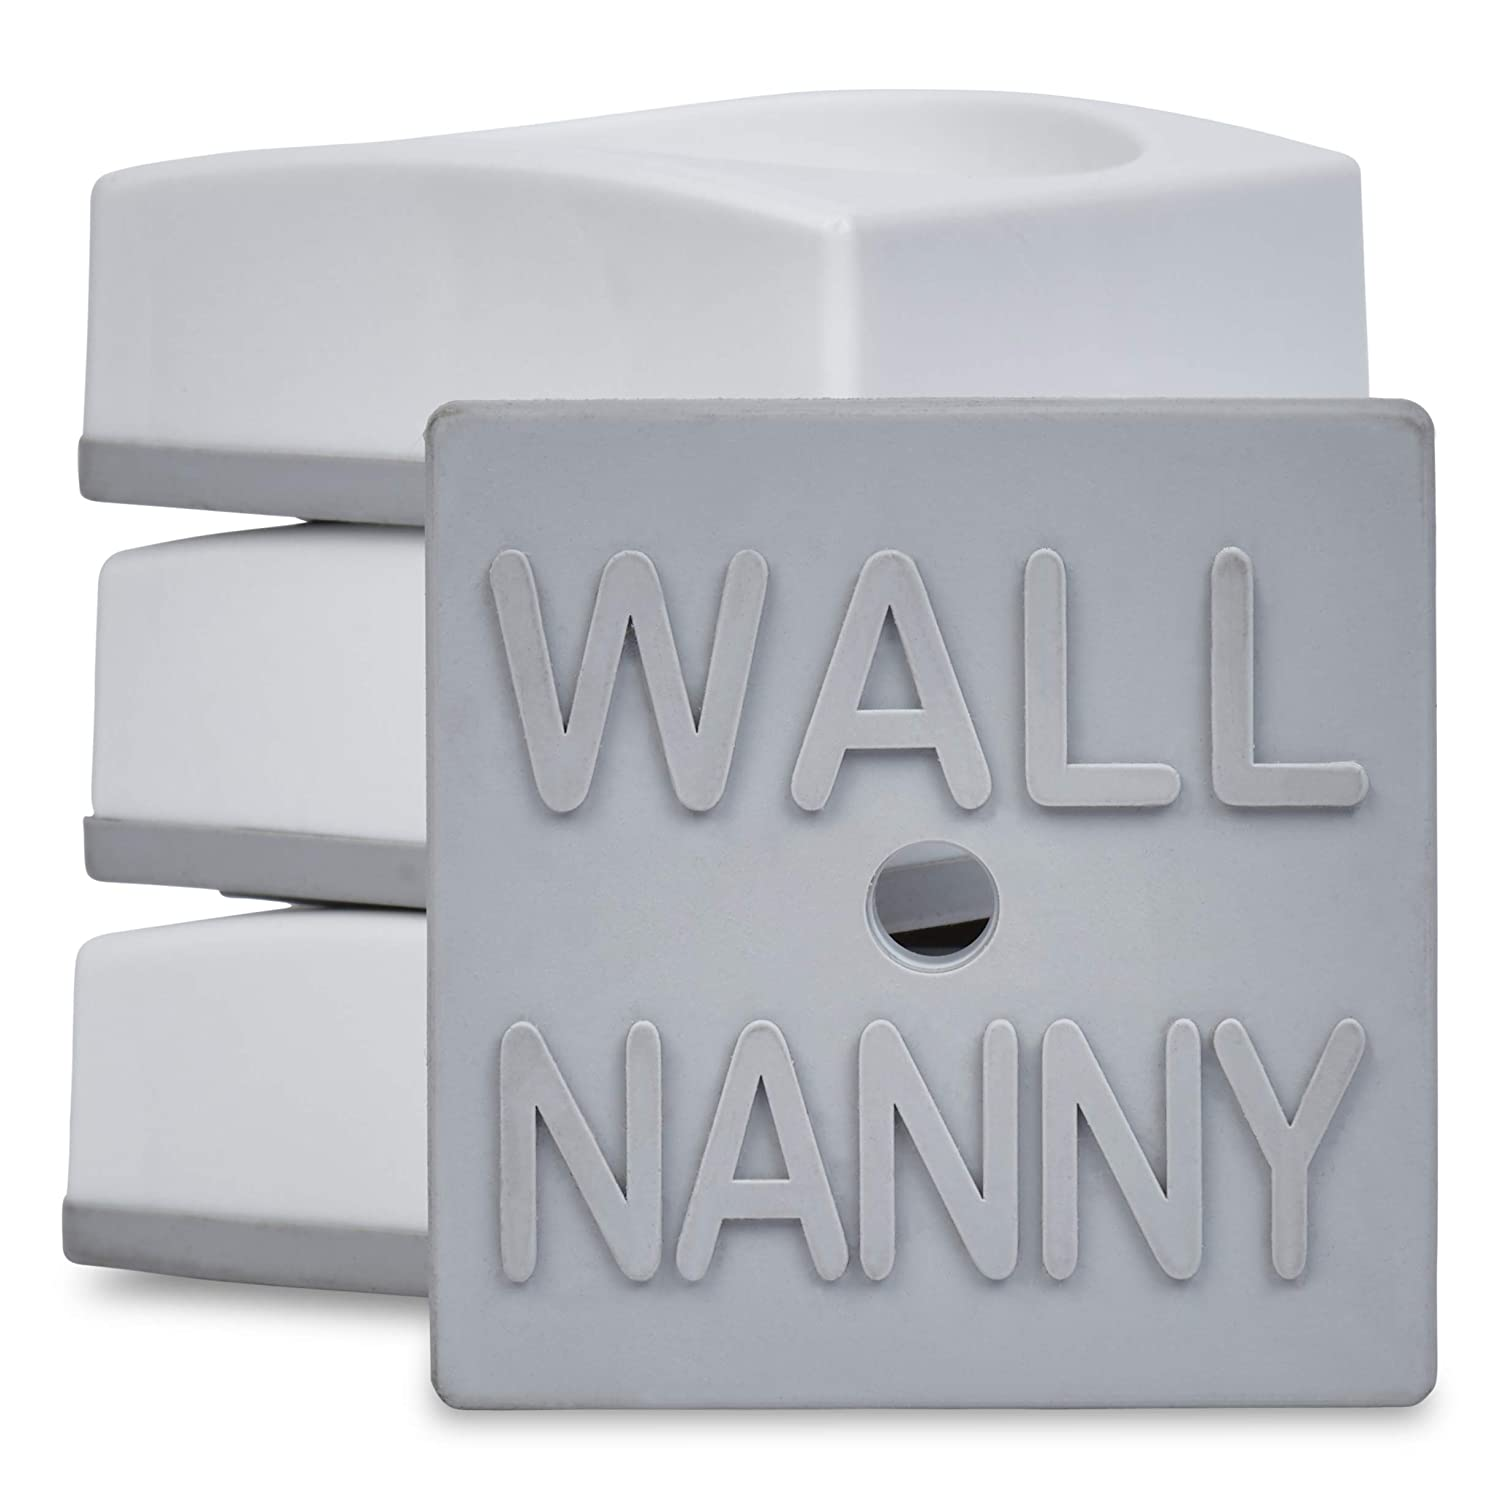 Wall Nanny Mini - Baby Gate Wall Protector (4 Pack - Made in USA) for Dog & Pet Gates - Small Low-Profile Saver - Perfect in Doorways - Cups Protect & Guard Walls from Kid Child Safety Pressure Gates